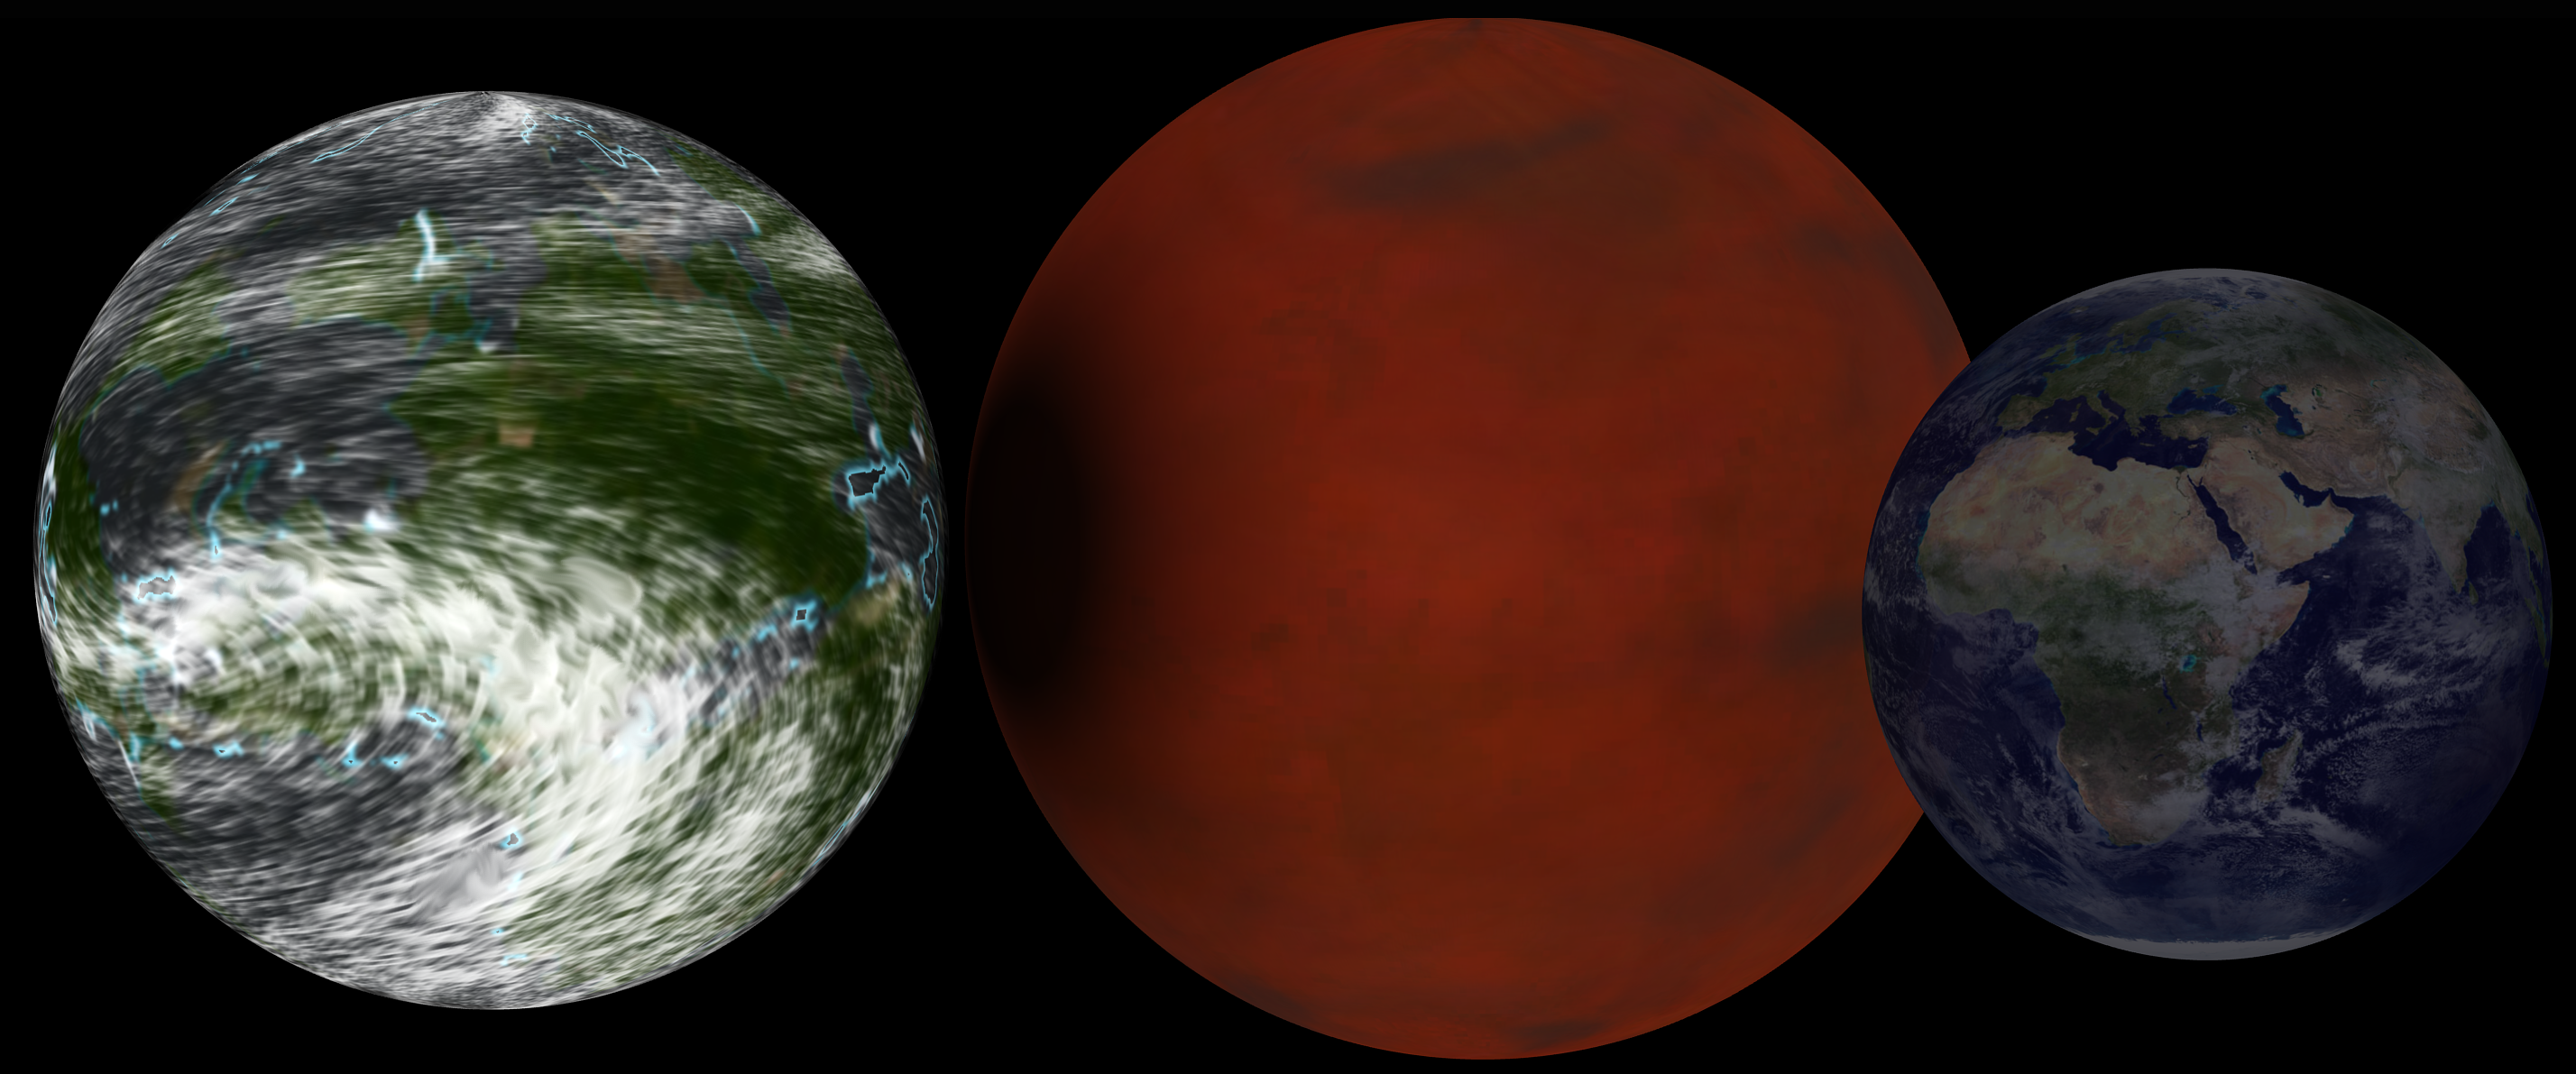 Hypothetical super earth next to Earth for comparison.